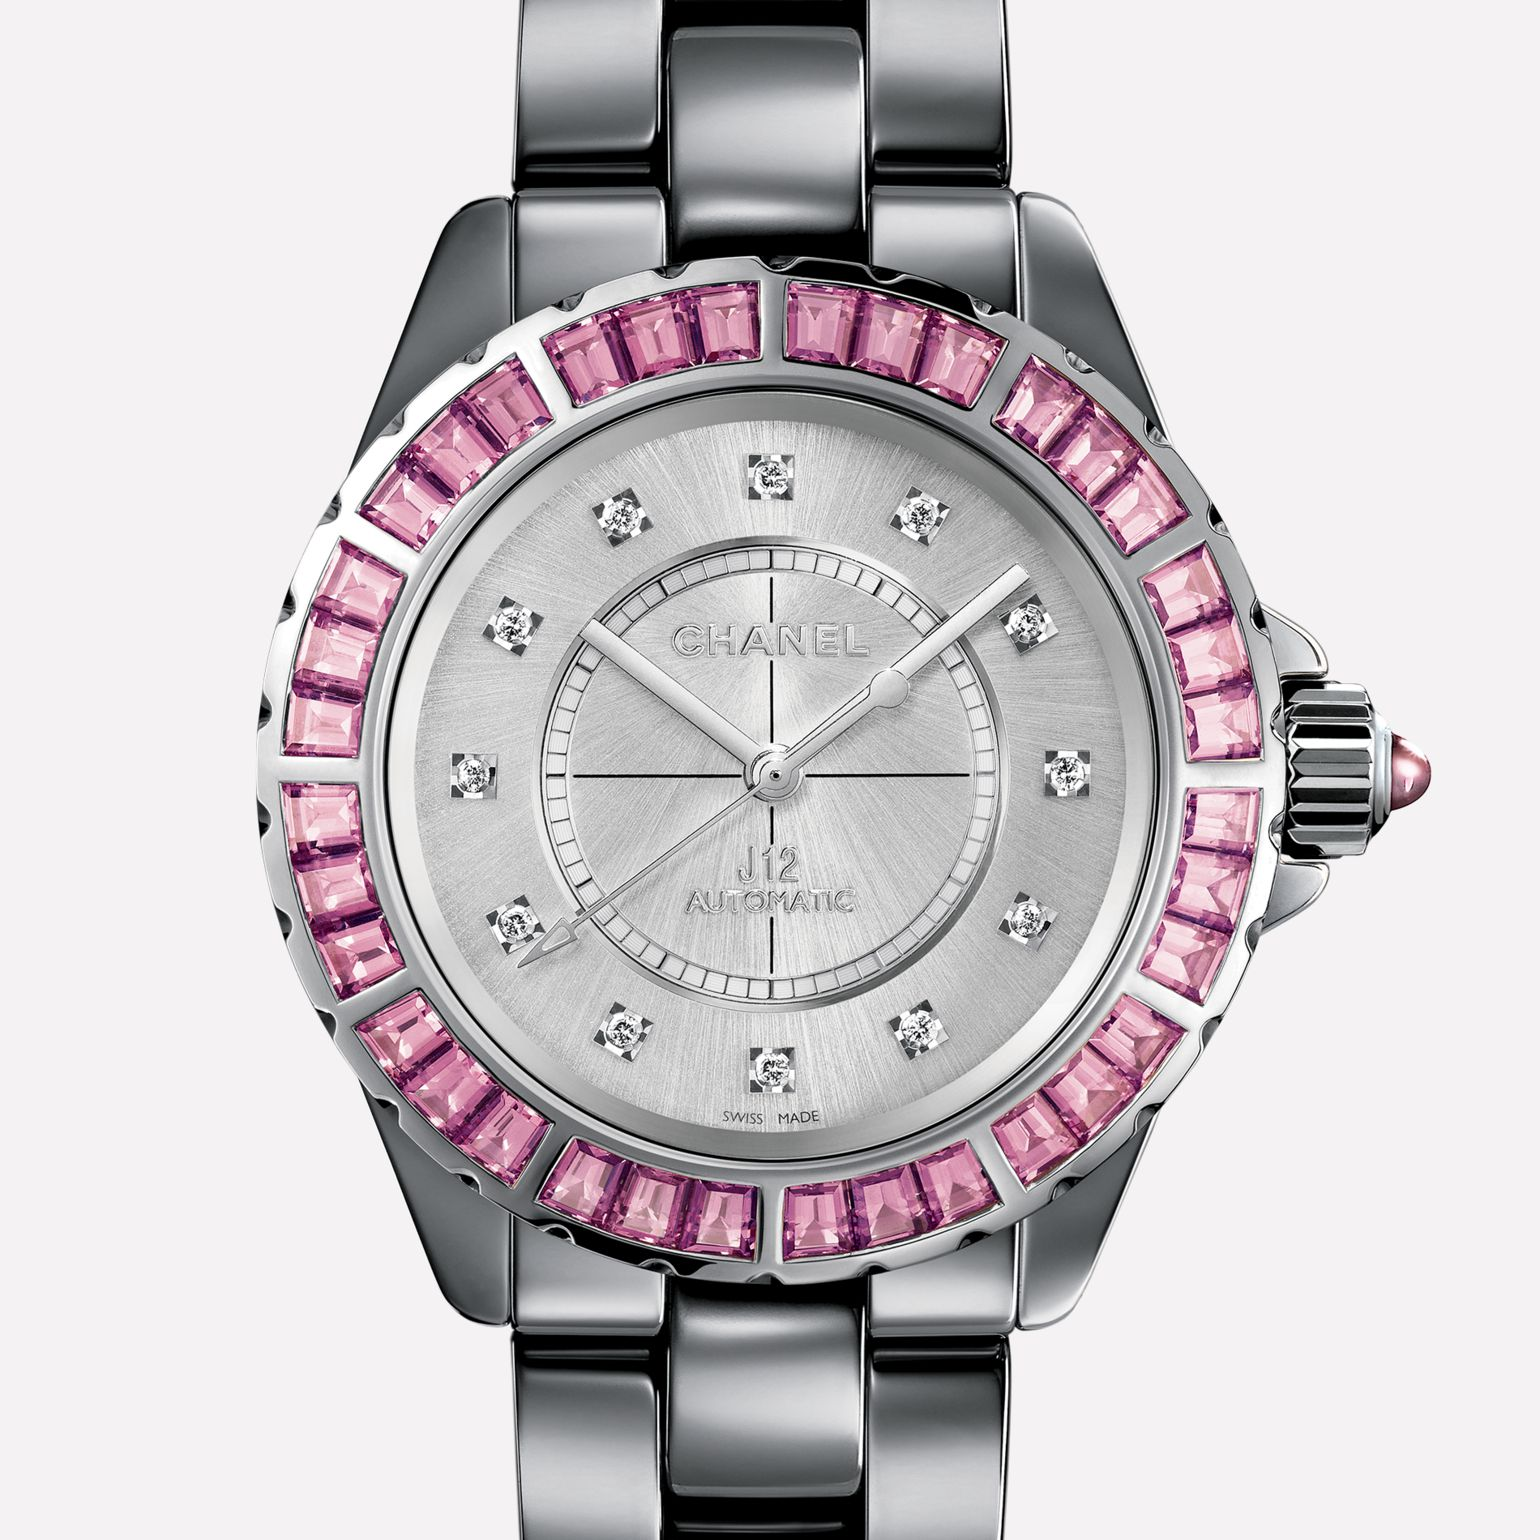 J12 Jewellery Watch Titanium ceramic and white gold, bezel set with baguette cut pink sapphires, diamond indicators